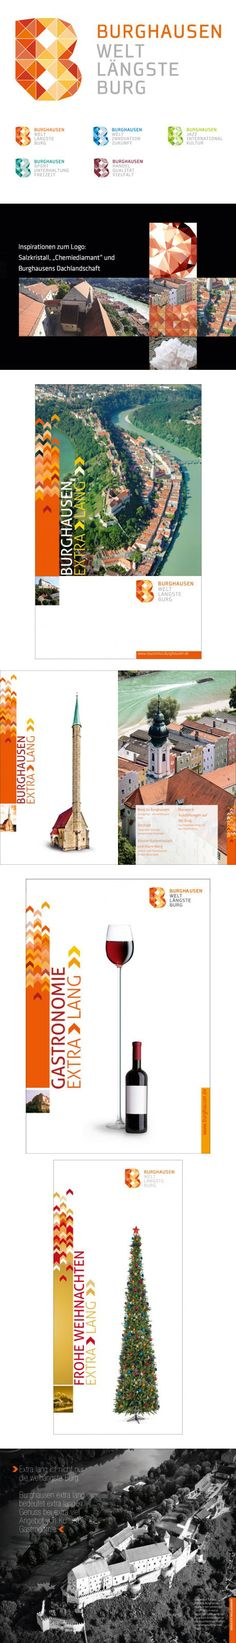 Identity for Burghauser, Germany, by Matern Creativbuero #city_brand